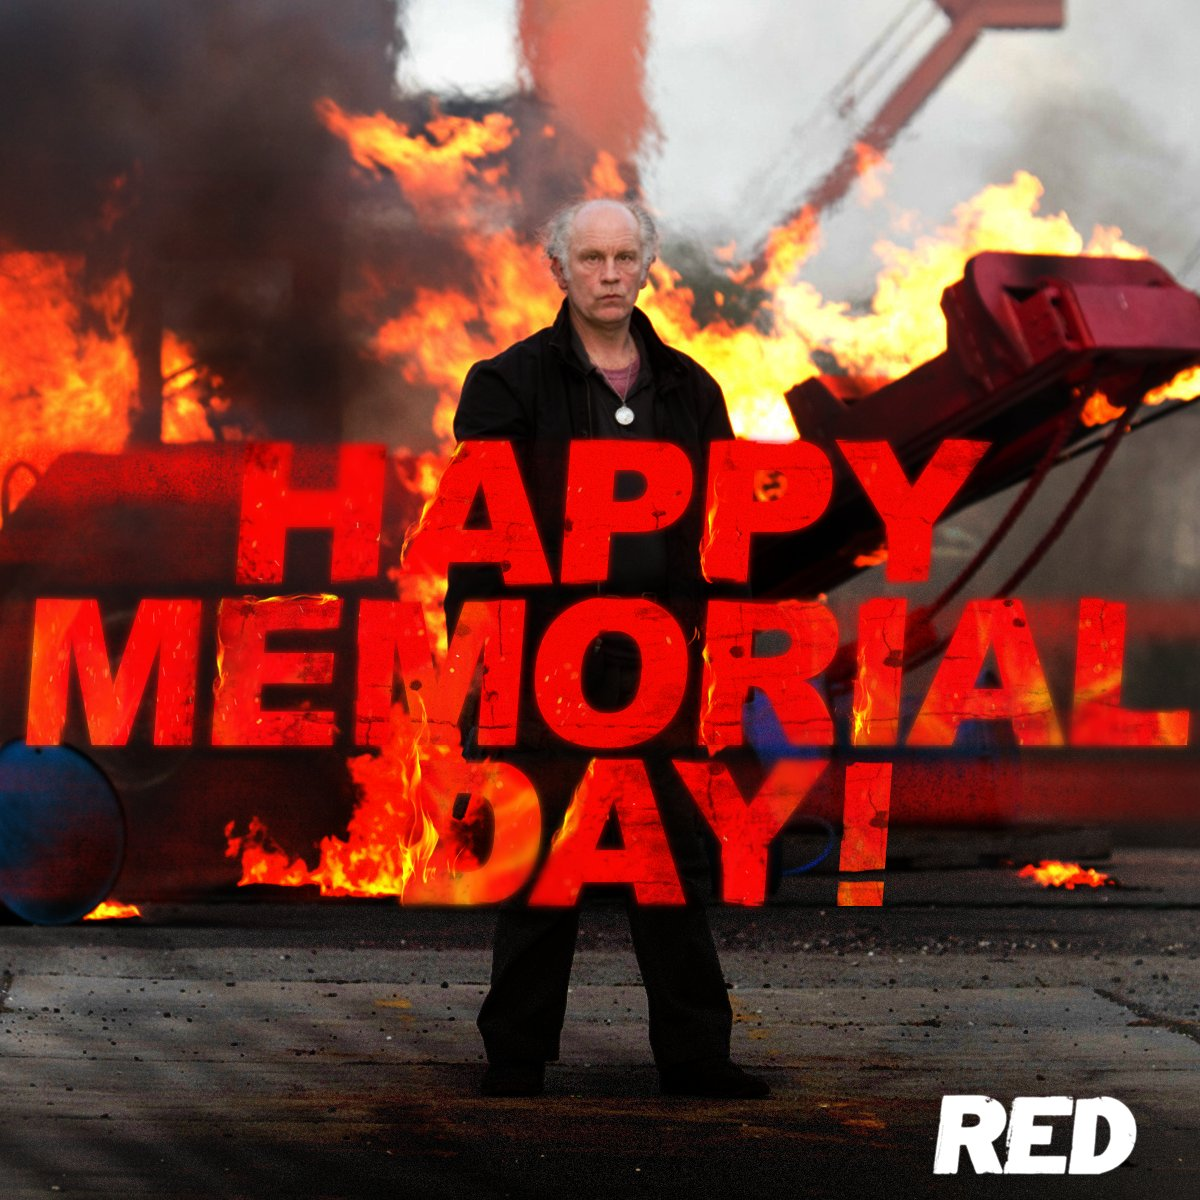 Don't let your BBQ get out of hand this #MemorialDay.  #RED <br>http://pic.twitter.com/Pgvgf3rhFG